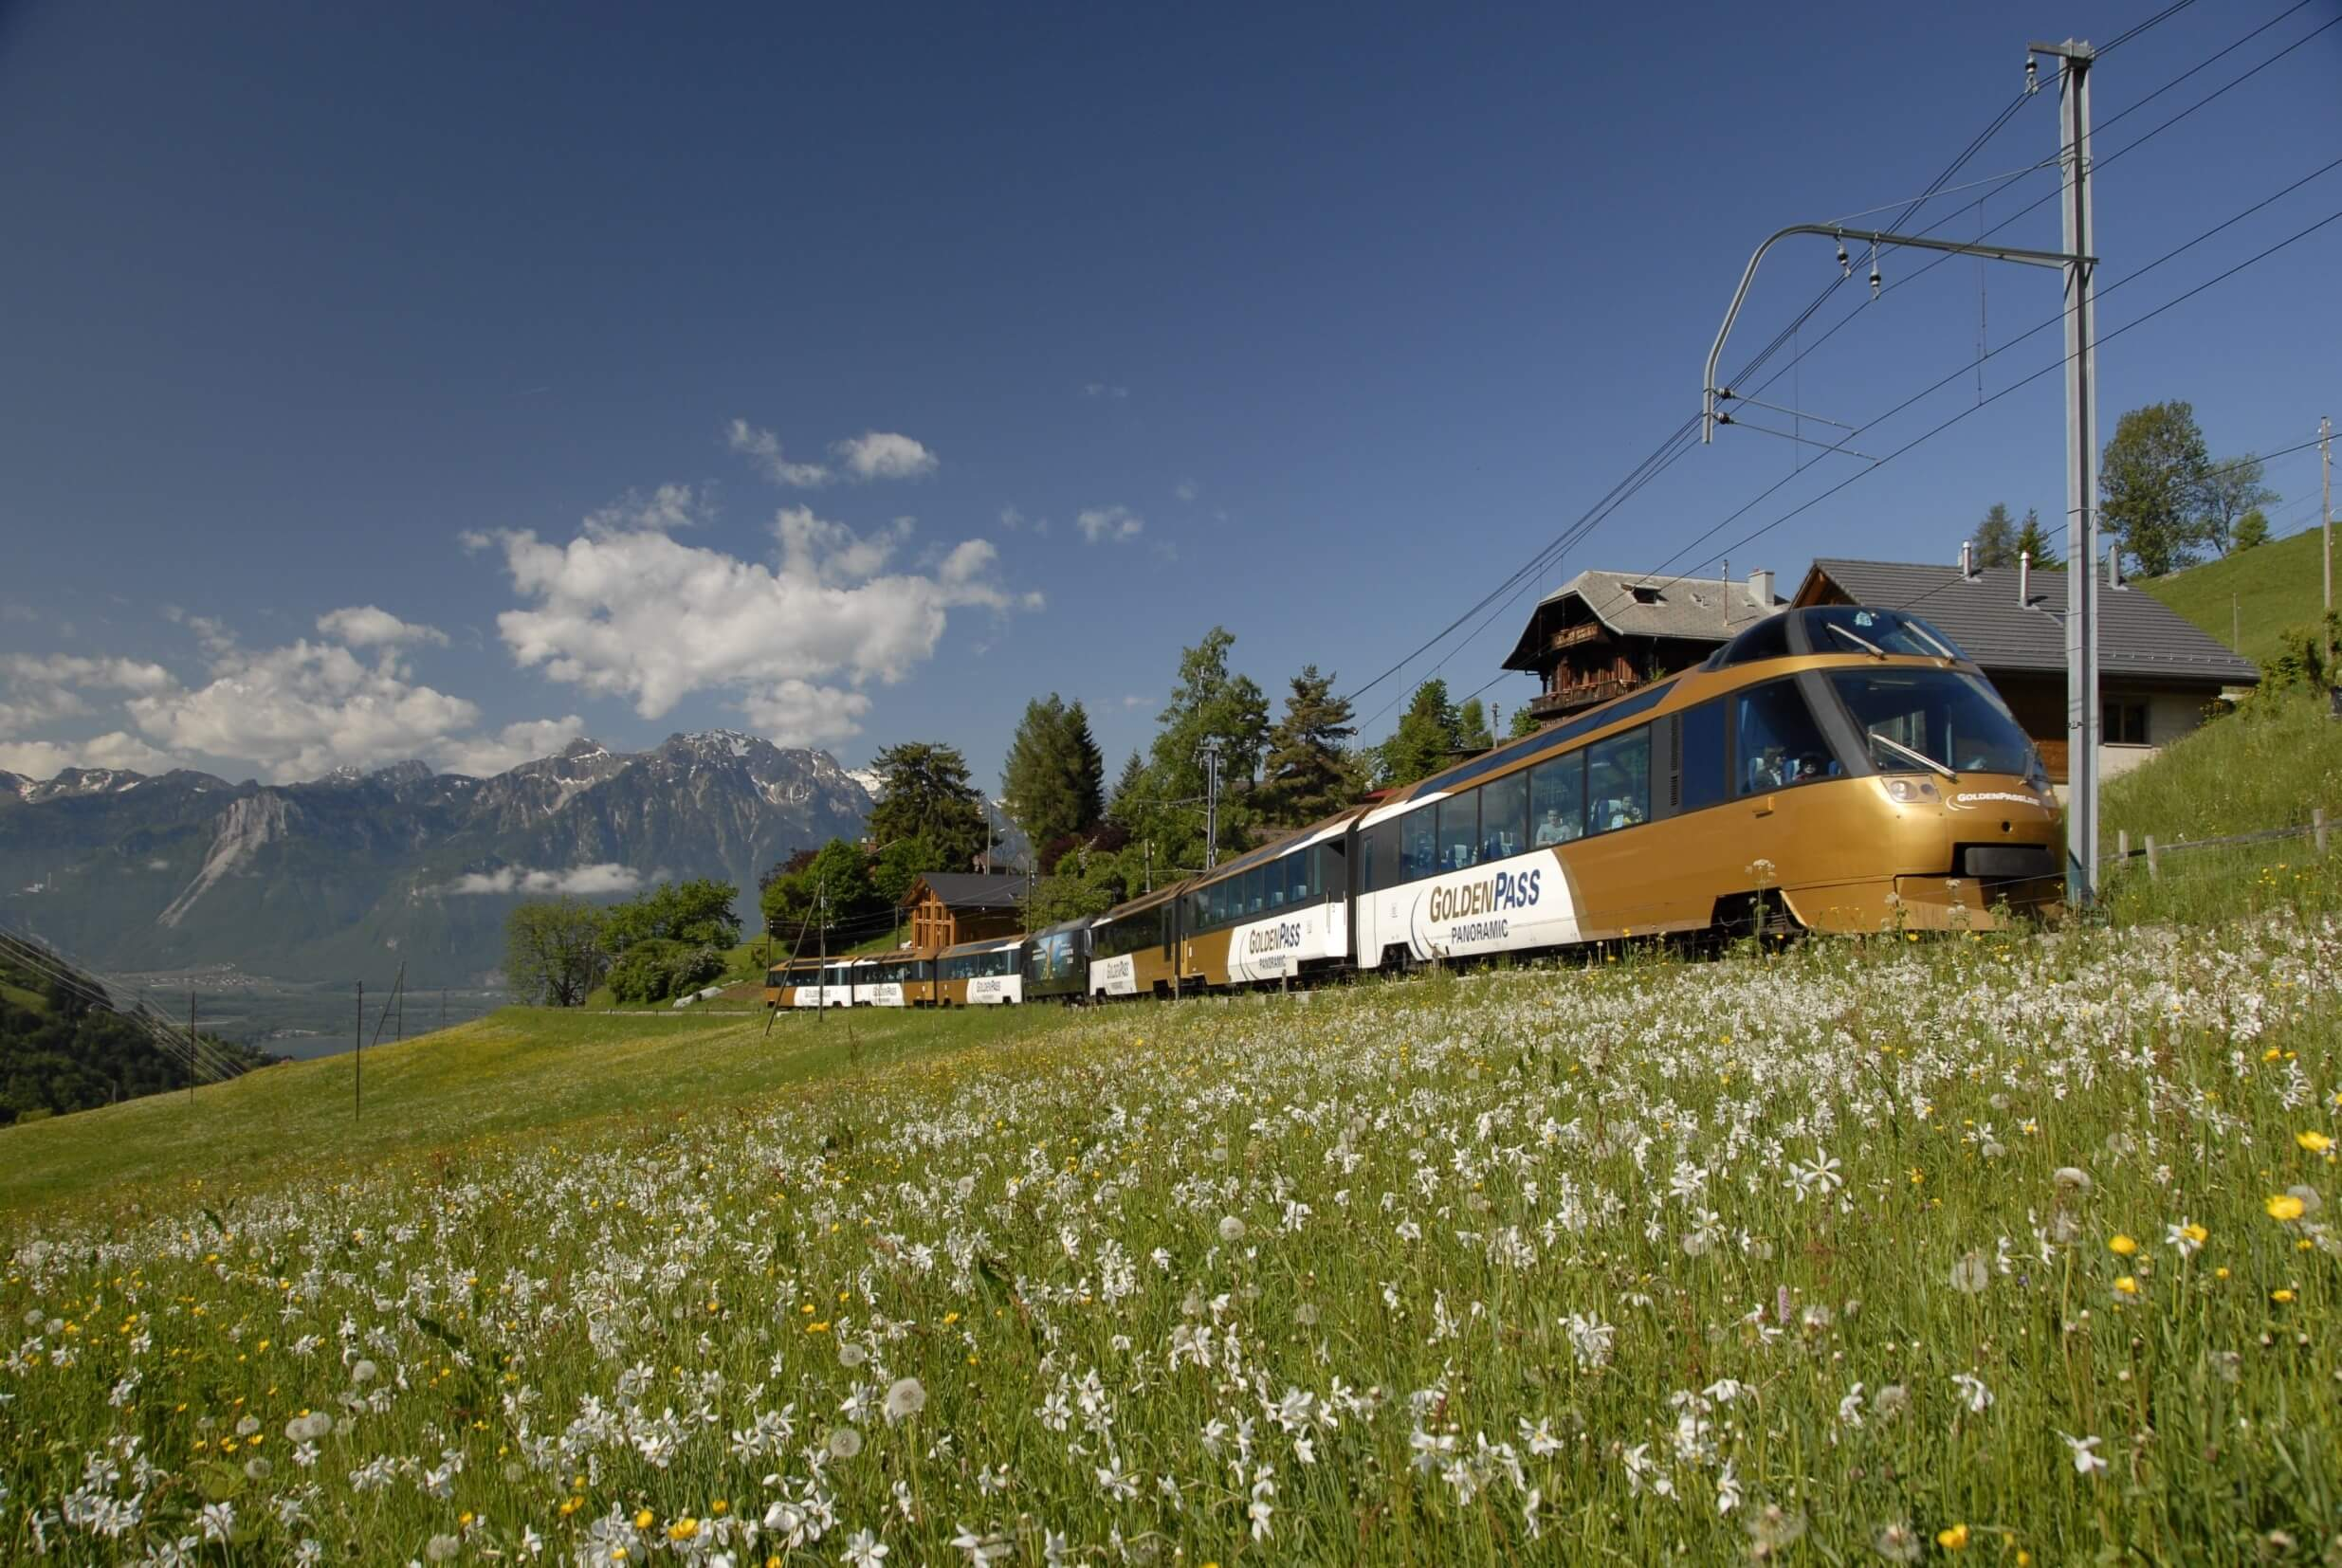 goldenpass-panoramic-zug-sommer